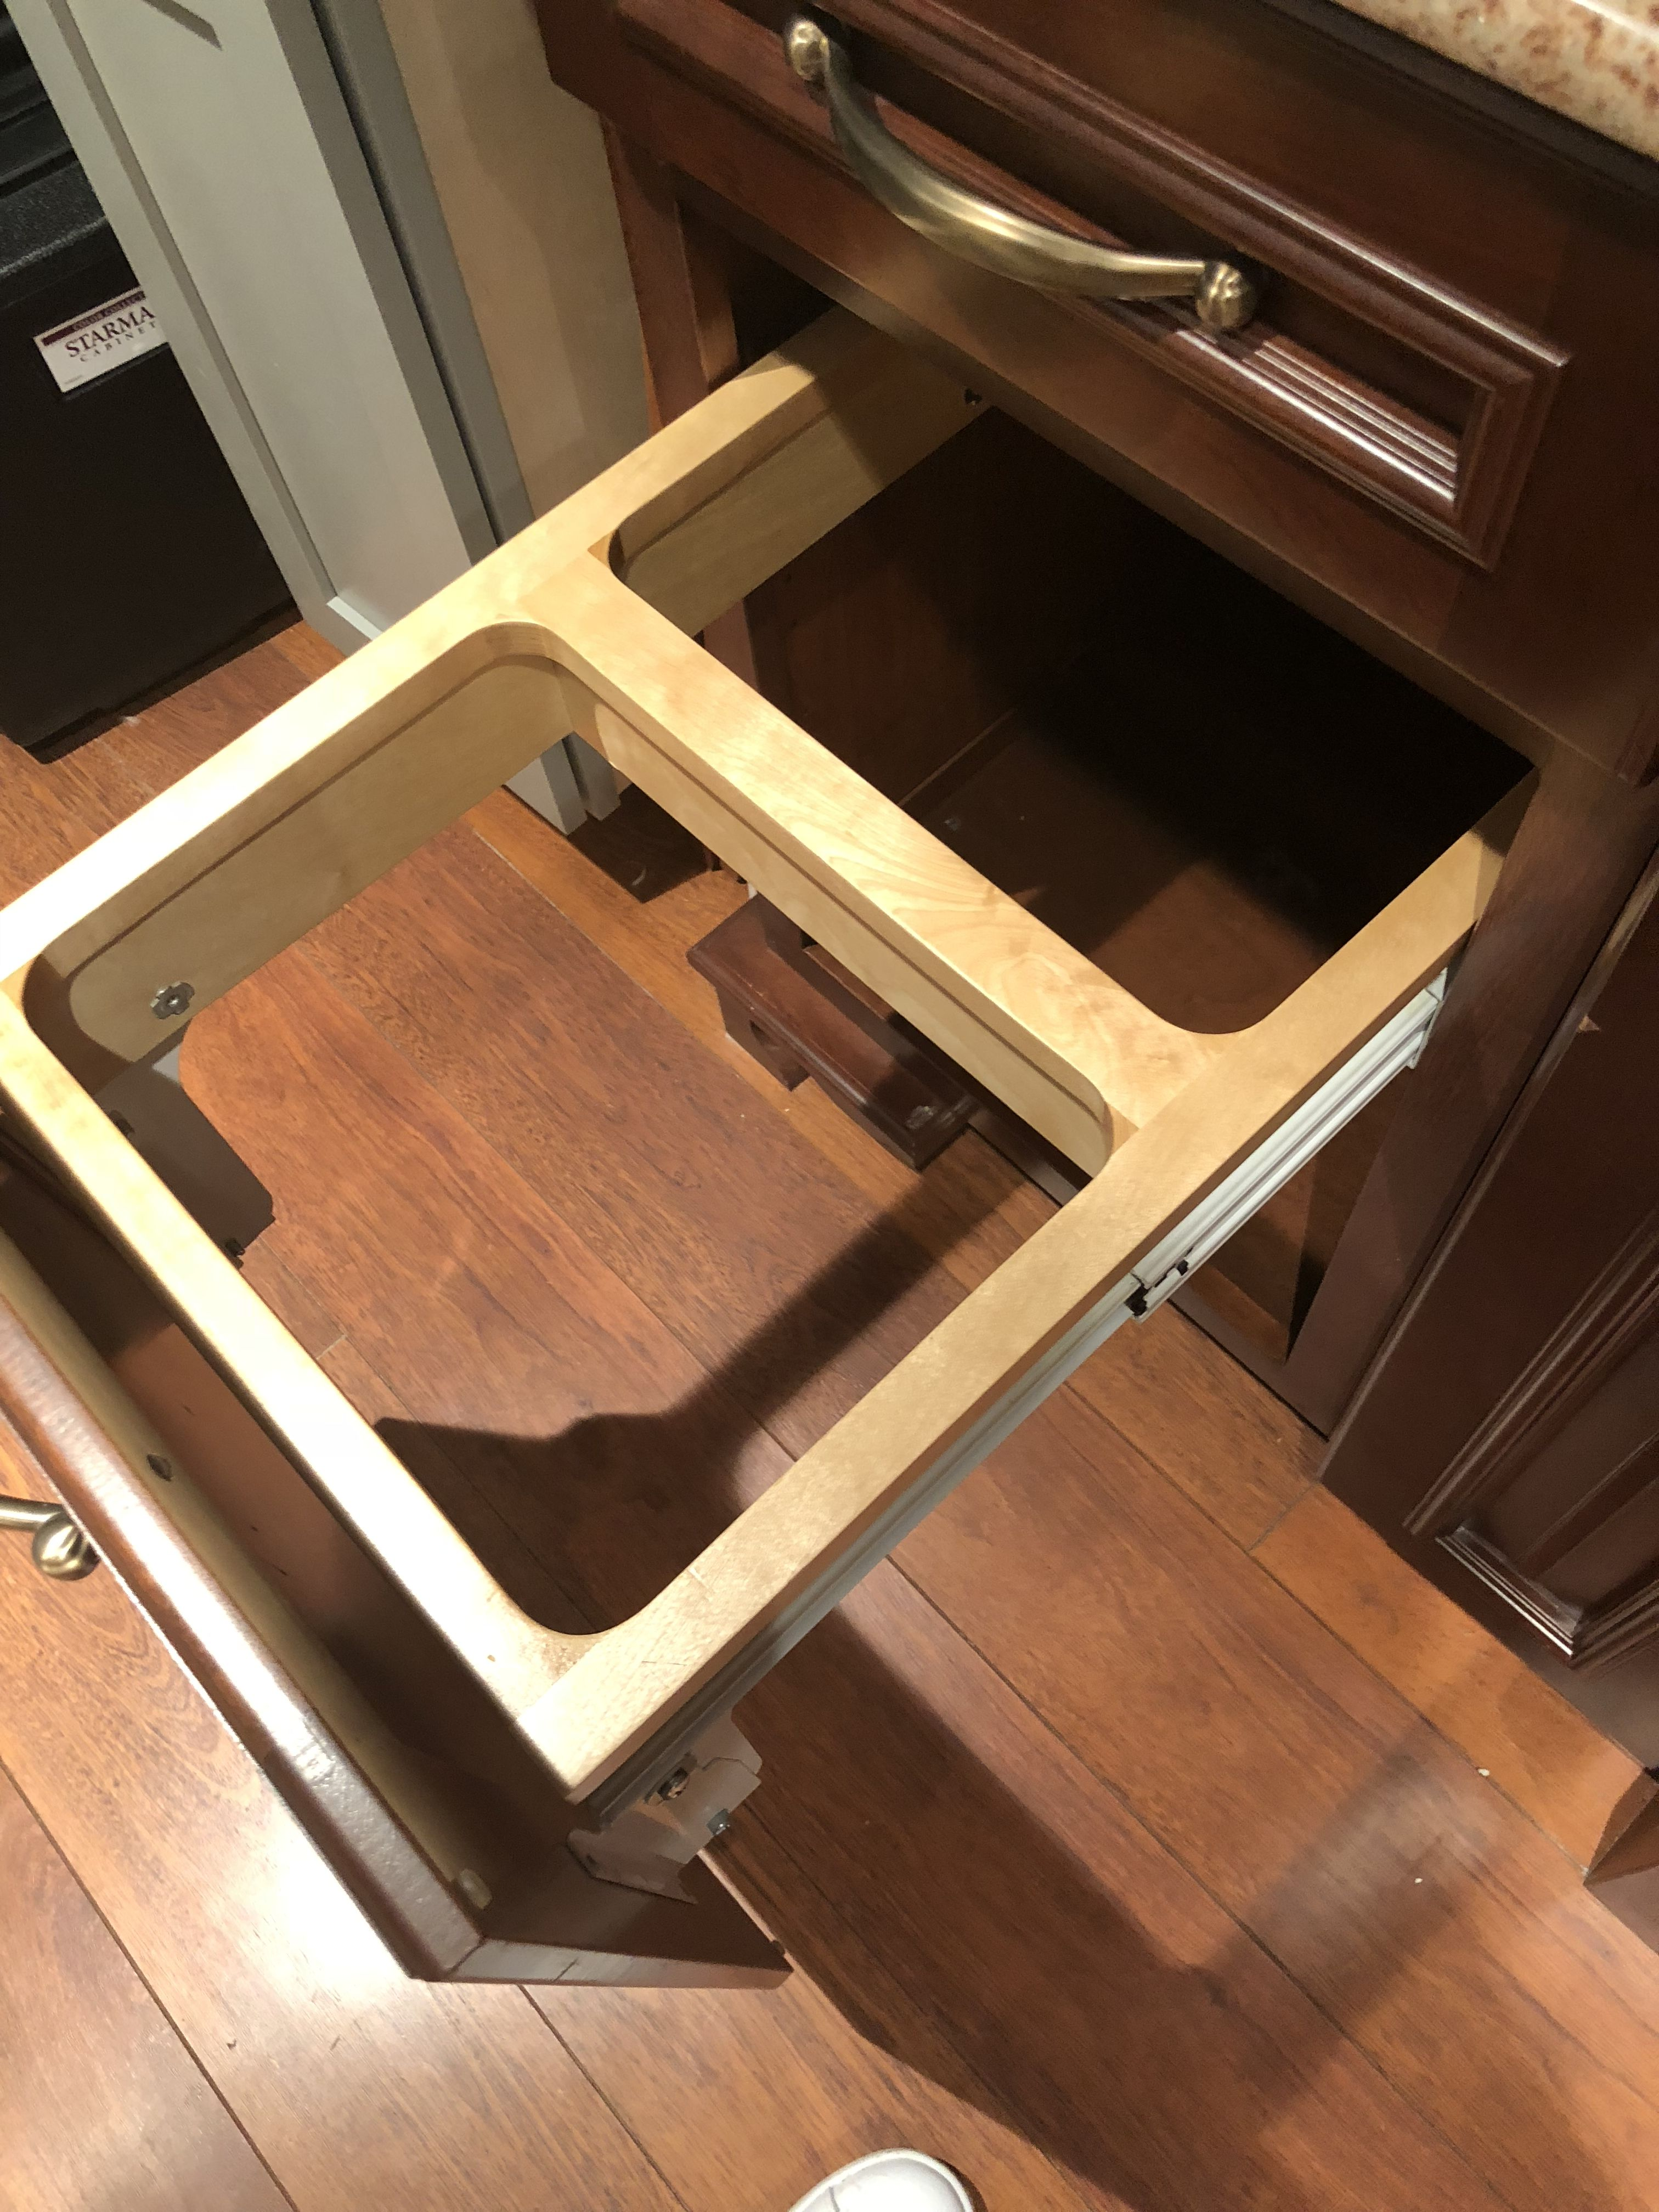 Custom kraftmaid kitchen display for sale  Check board description